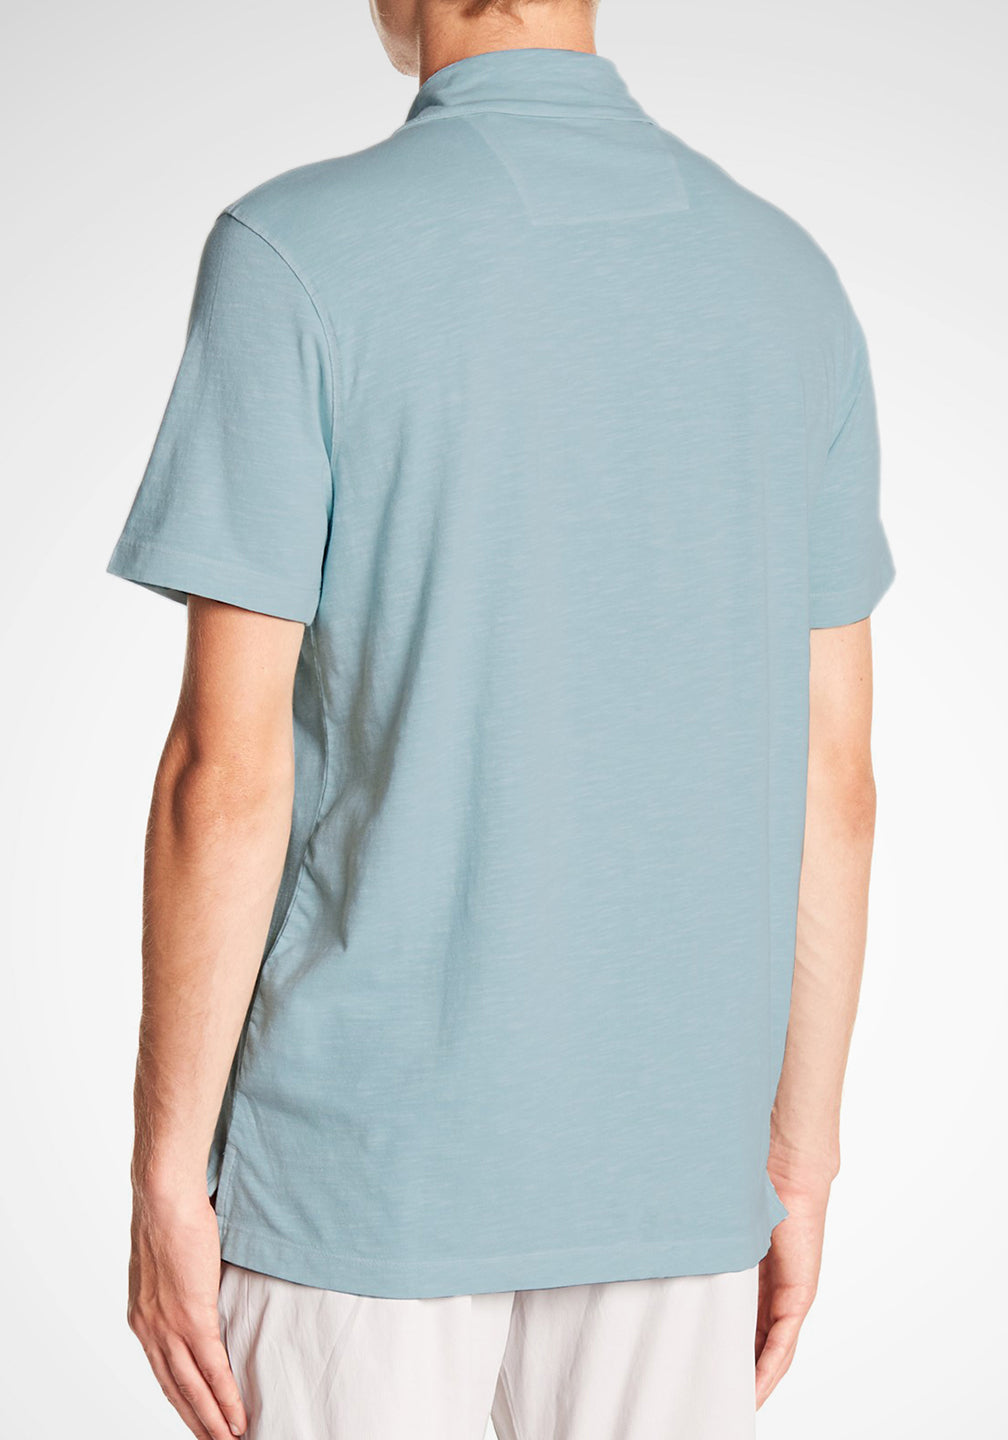 Back View Airotec Stretch Slub Jersey Polo in Sterling Blue